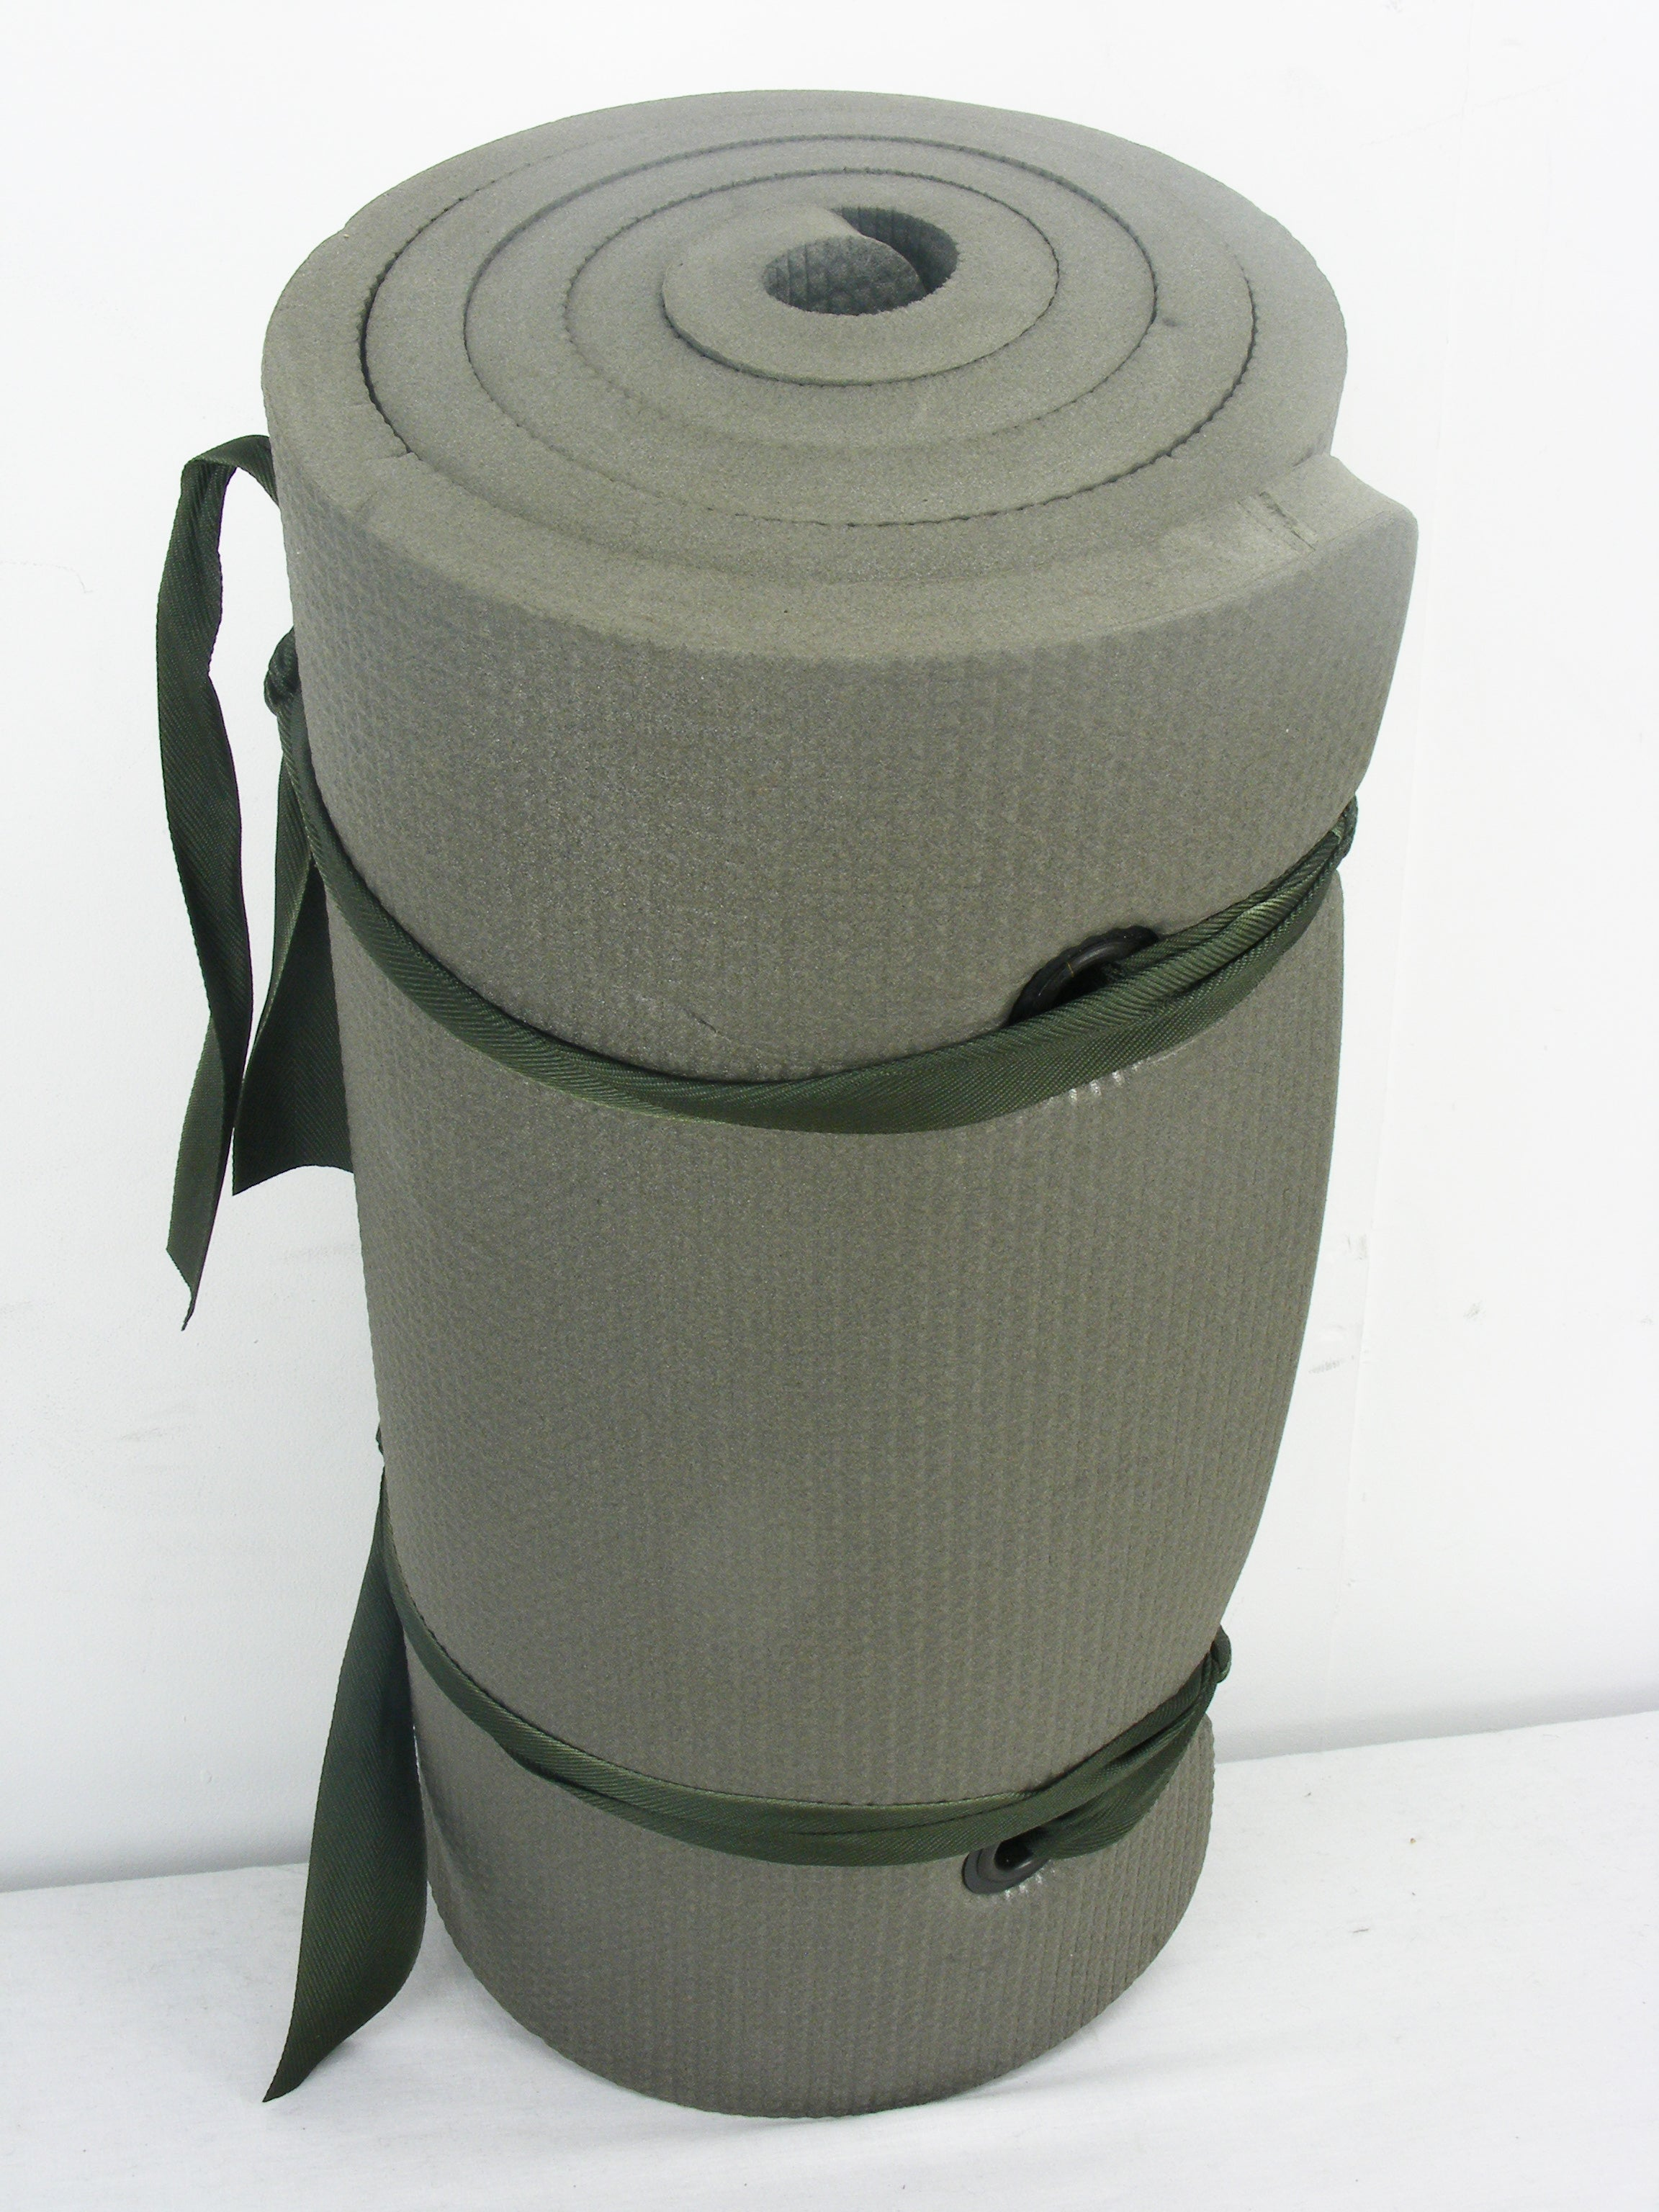 Dutch thick military rolled sleep mat with Woodland camo carry bag